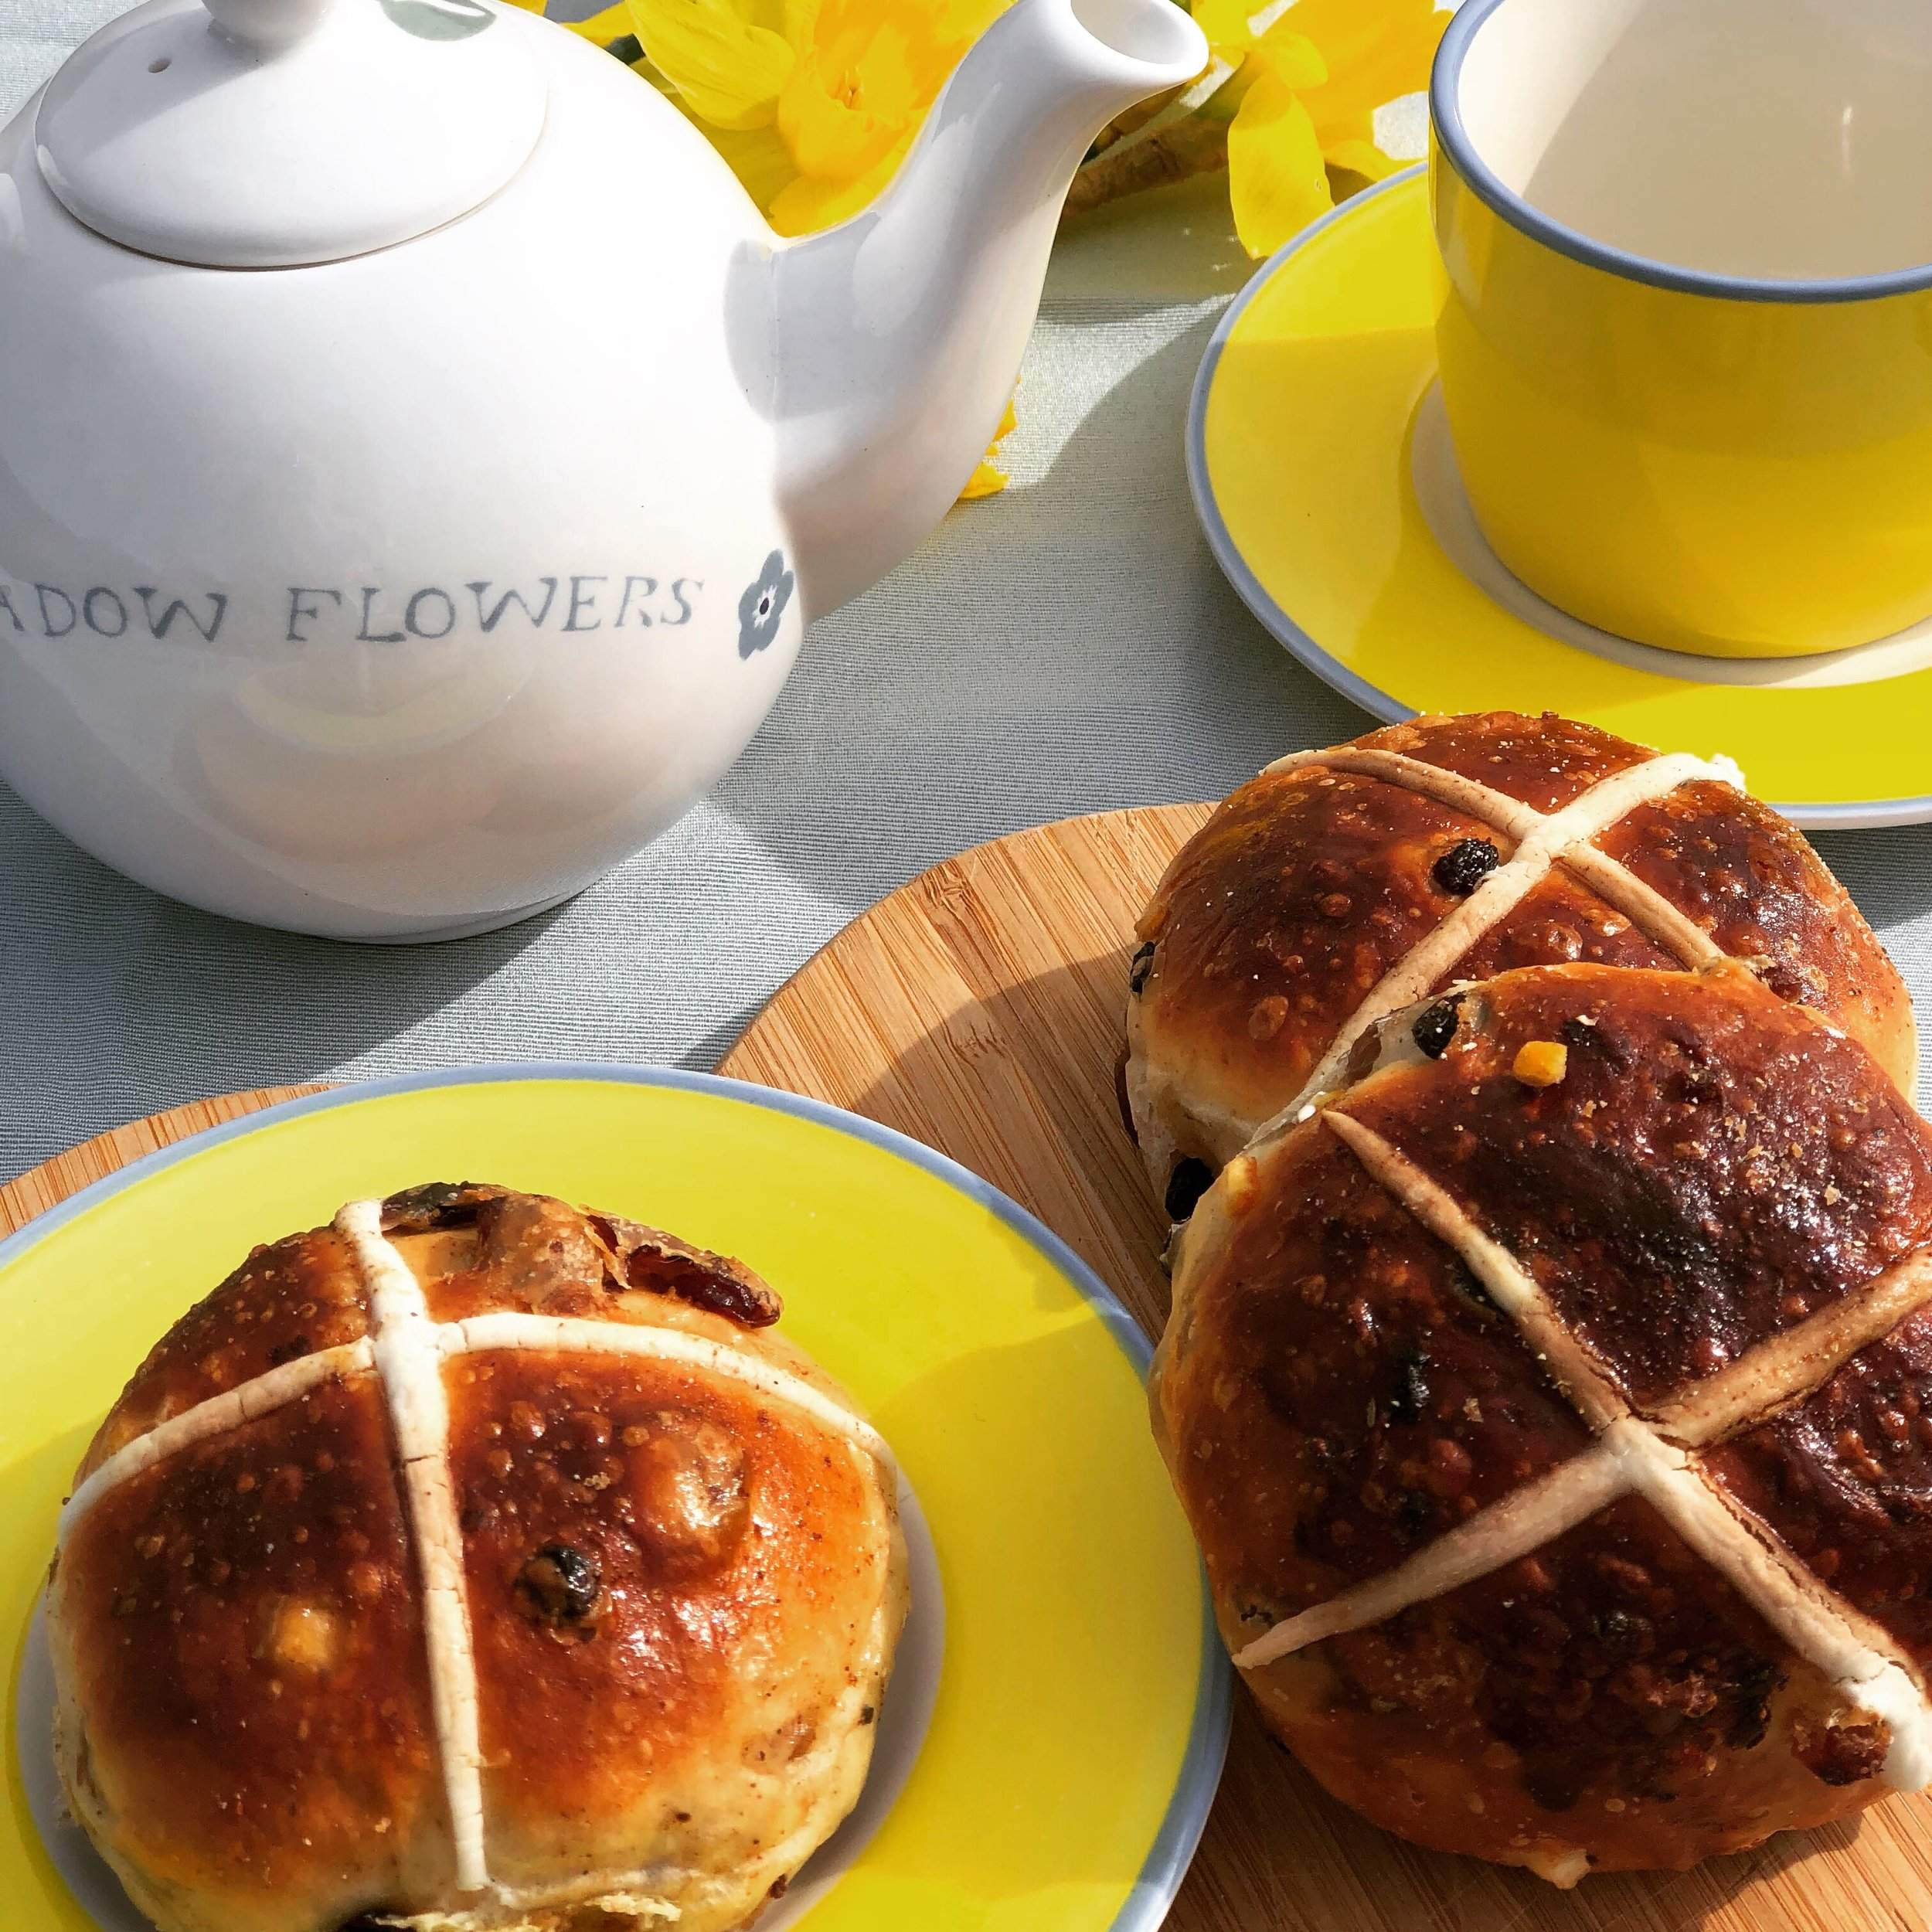 Hambleton_bakery_hot_cross_buns.jpg